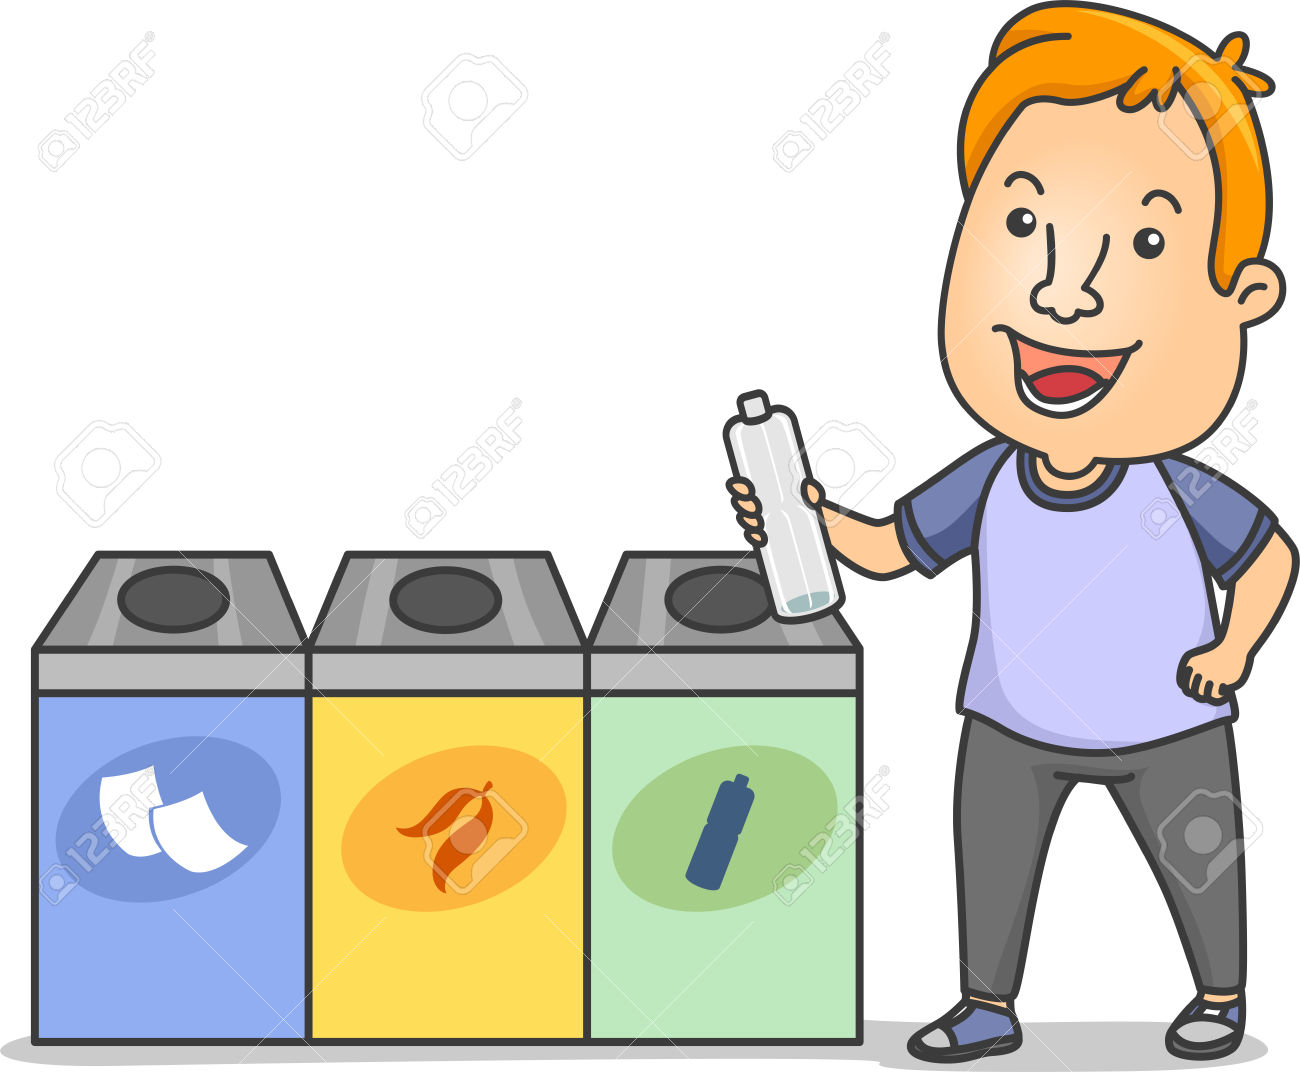 Throwing garbage properly clipart.